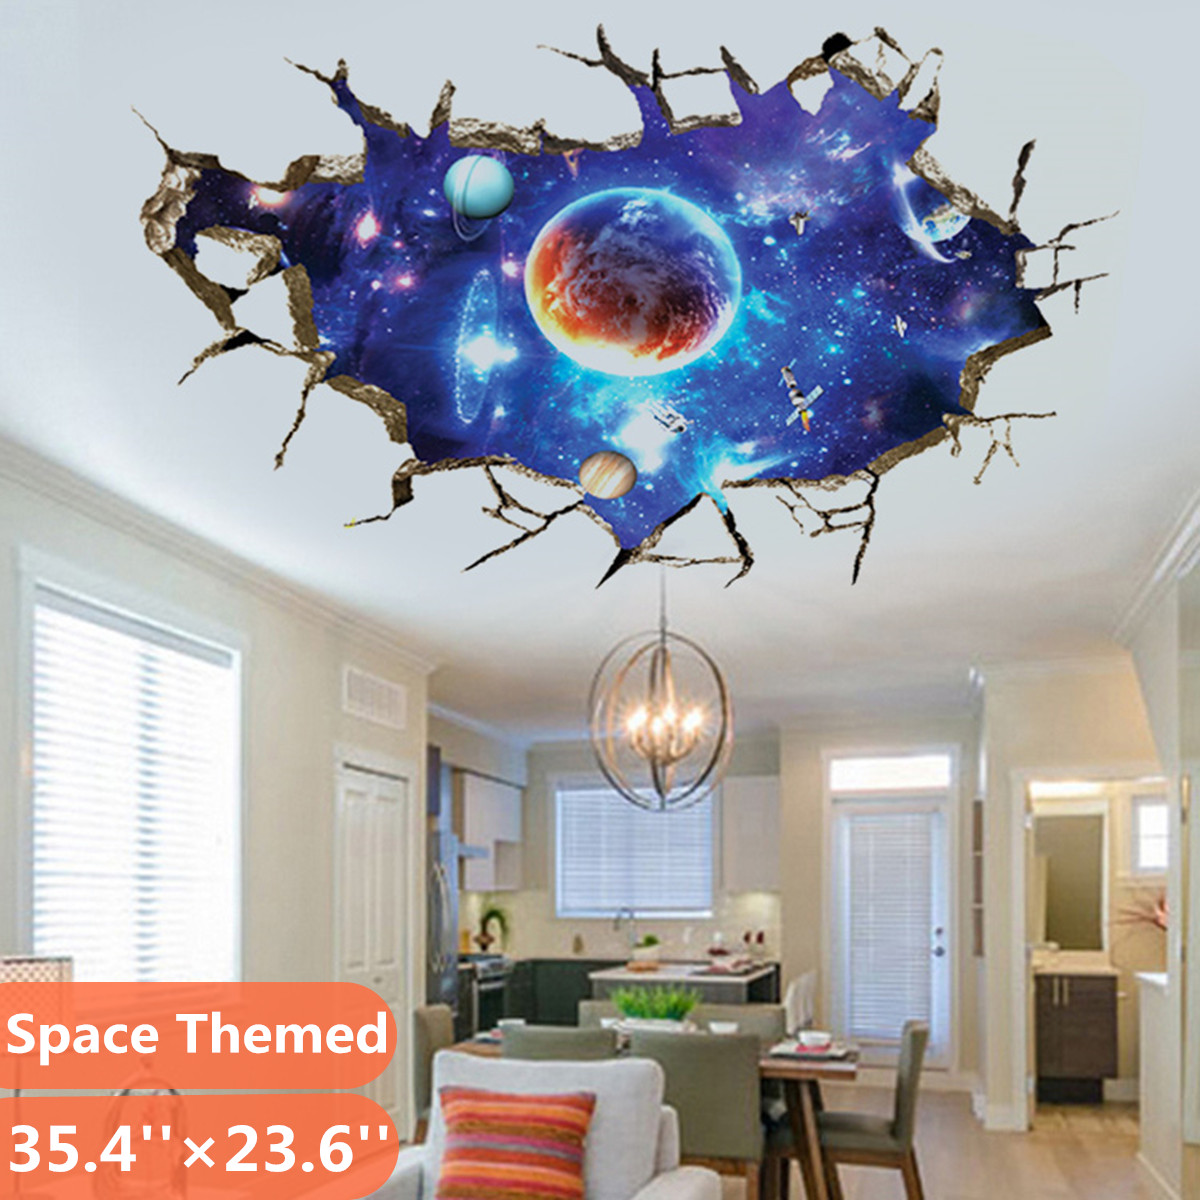 Outer Space Themed 10D Wall Sticker - Universe Scene with Planets Stars  Starry Sky - Kids Bedroom Ceiling Living Room Nursery Sticker Decor -